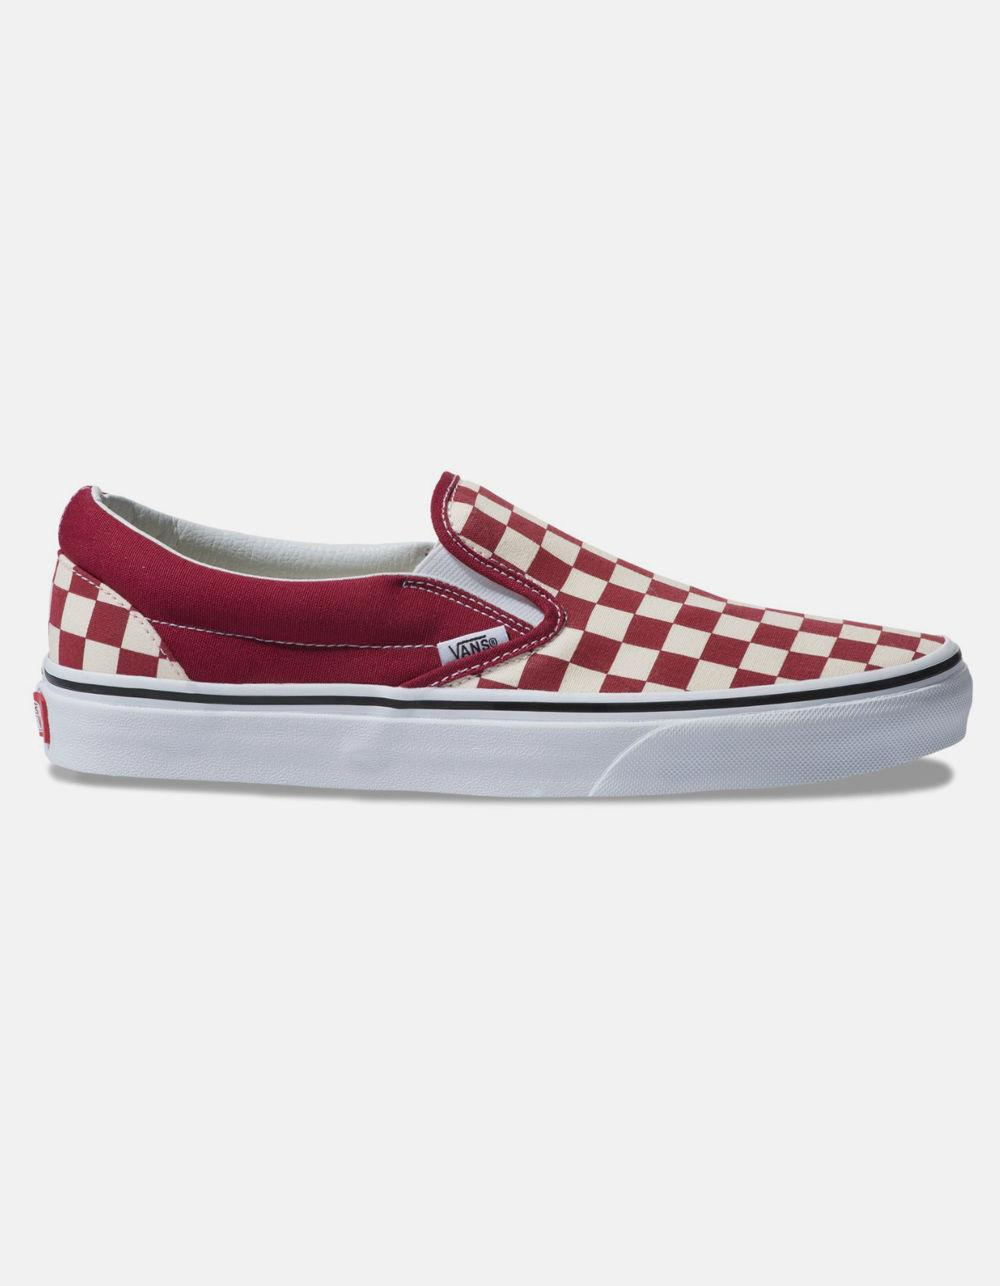 312d755ddf Lyst - Vans Checkerboard Classic Slip-on Rumba Red   True White ...